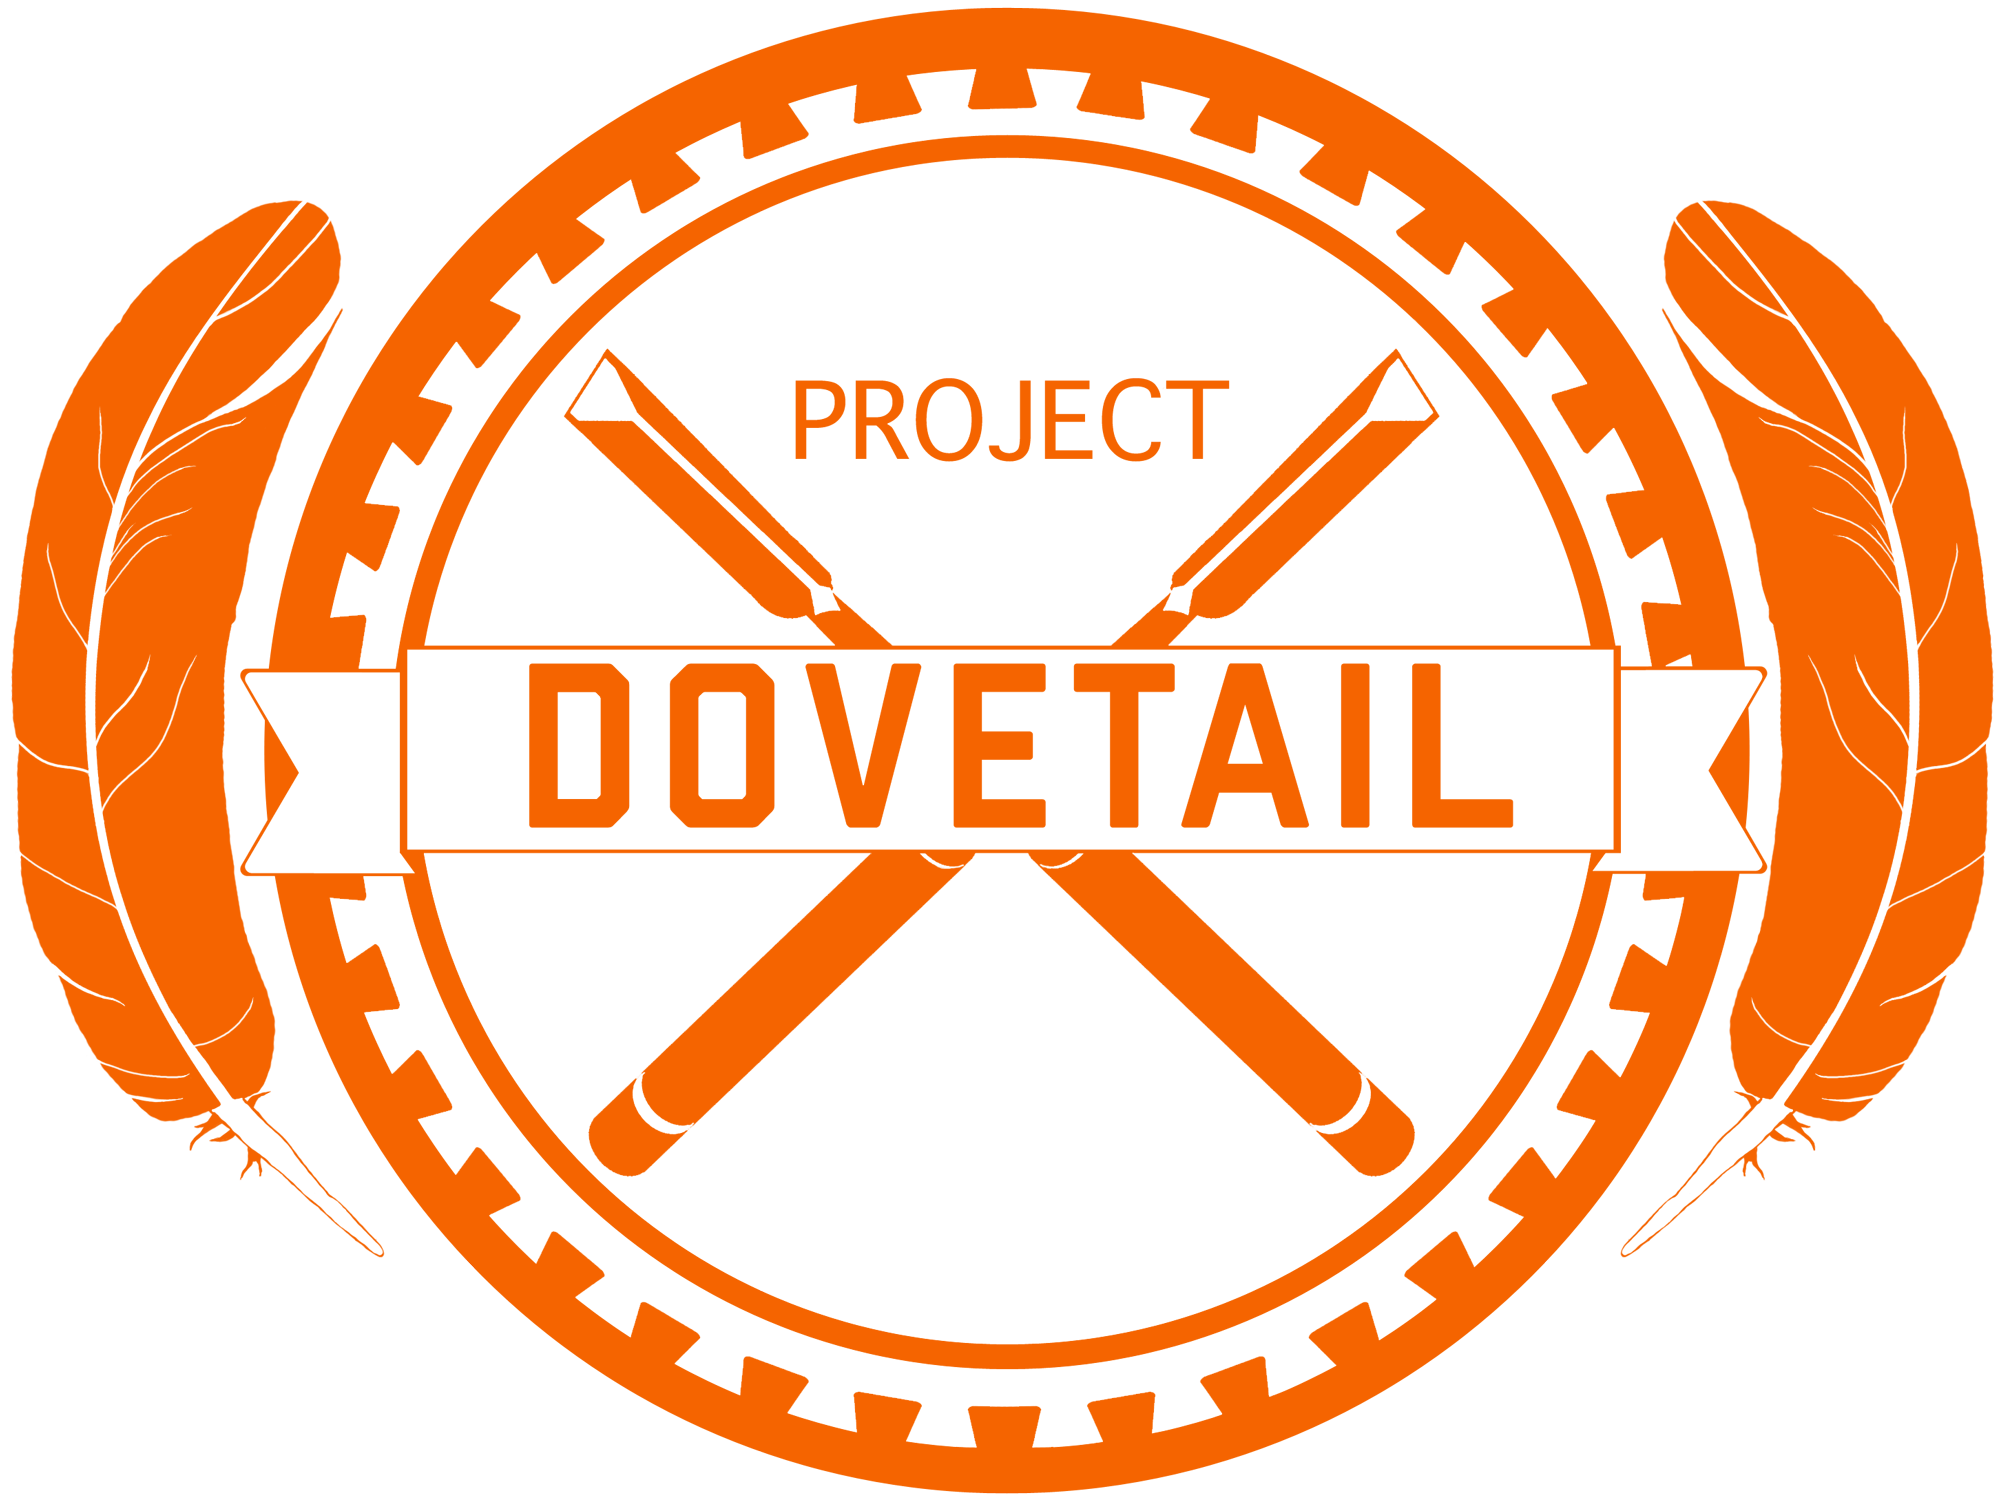 dovetail_EO_large.png